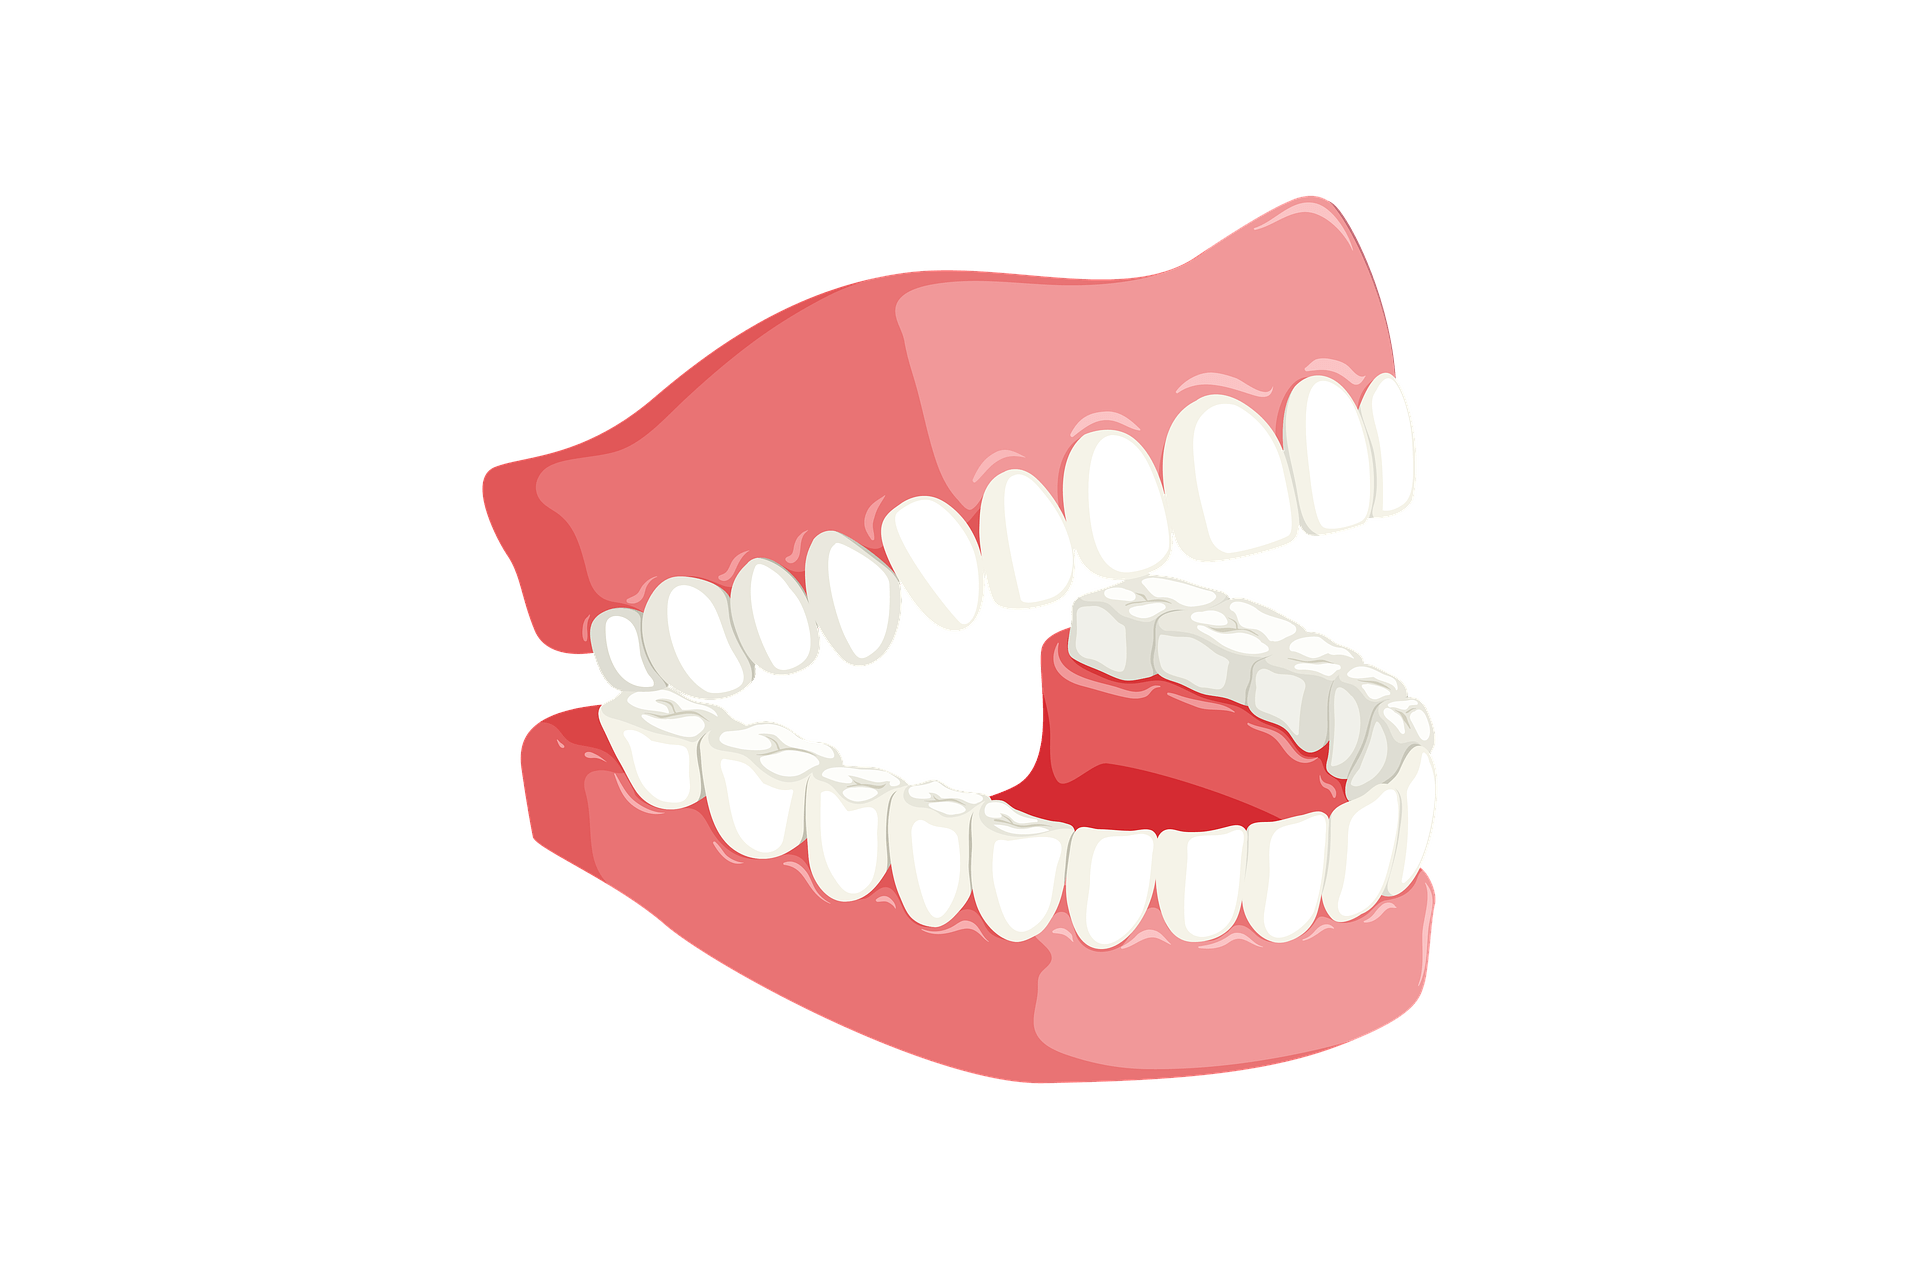 Tooth Loss and Available Solutions